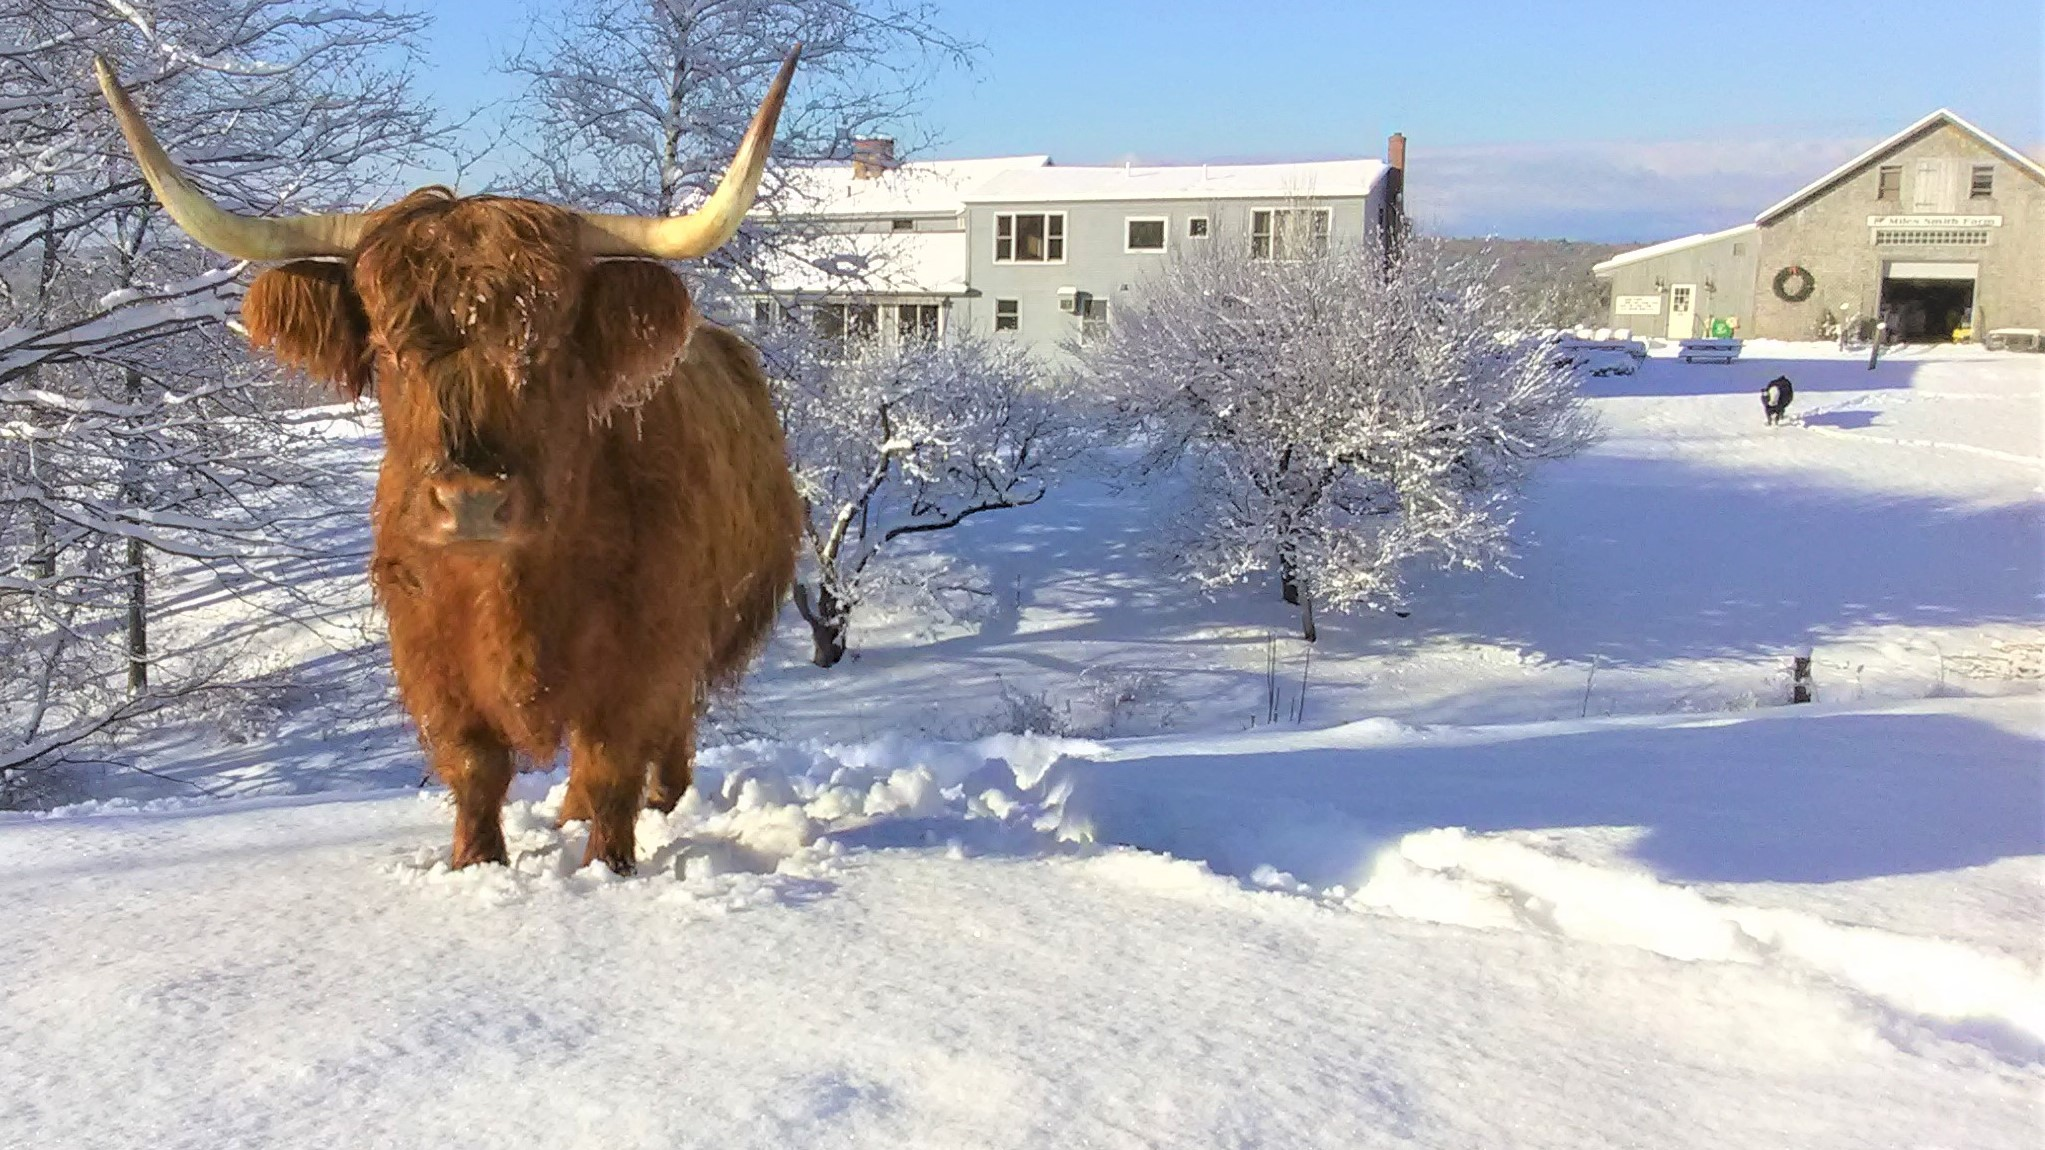 Cow in Snow at Miles Smith Farm